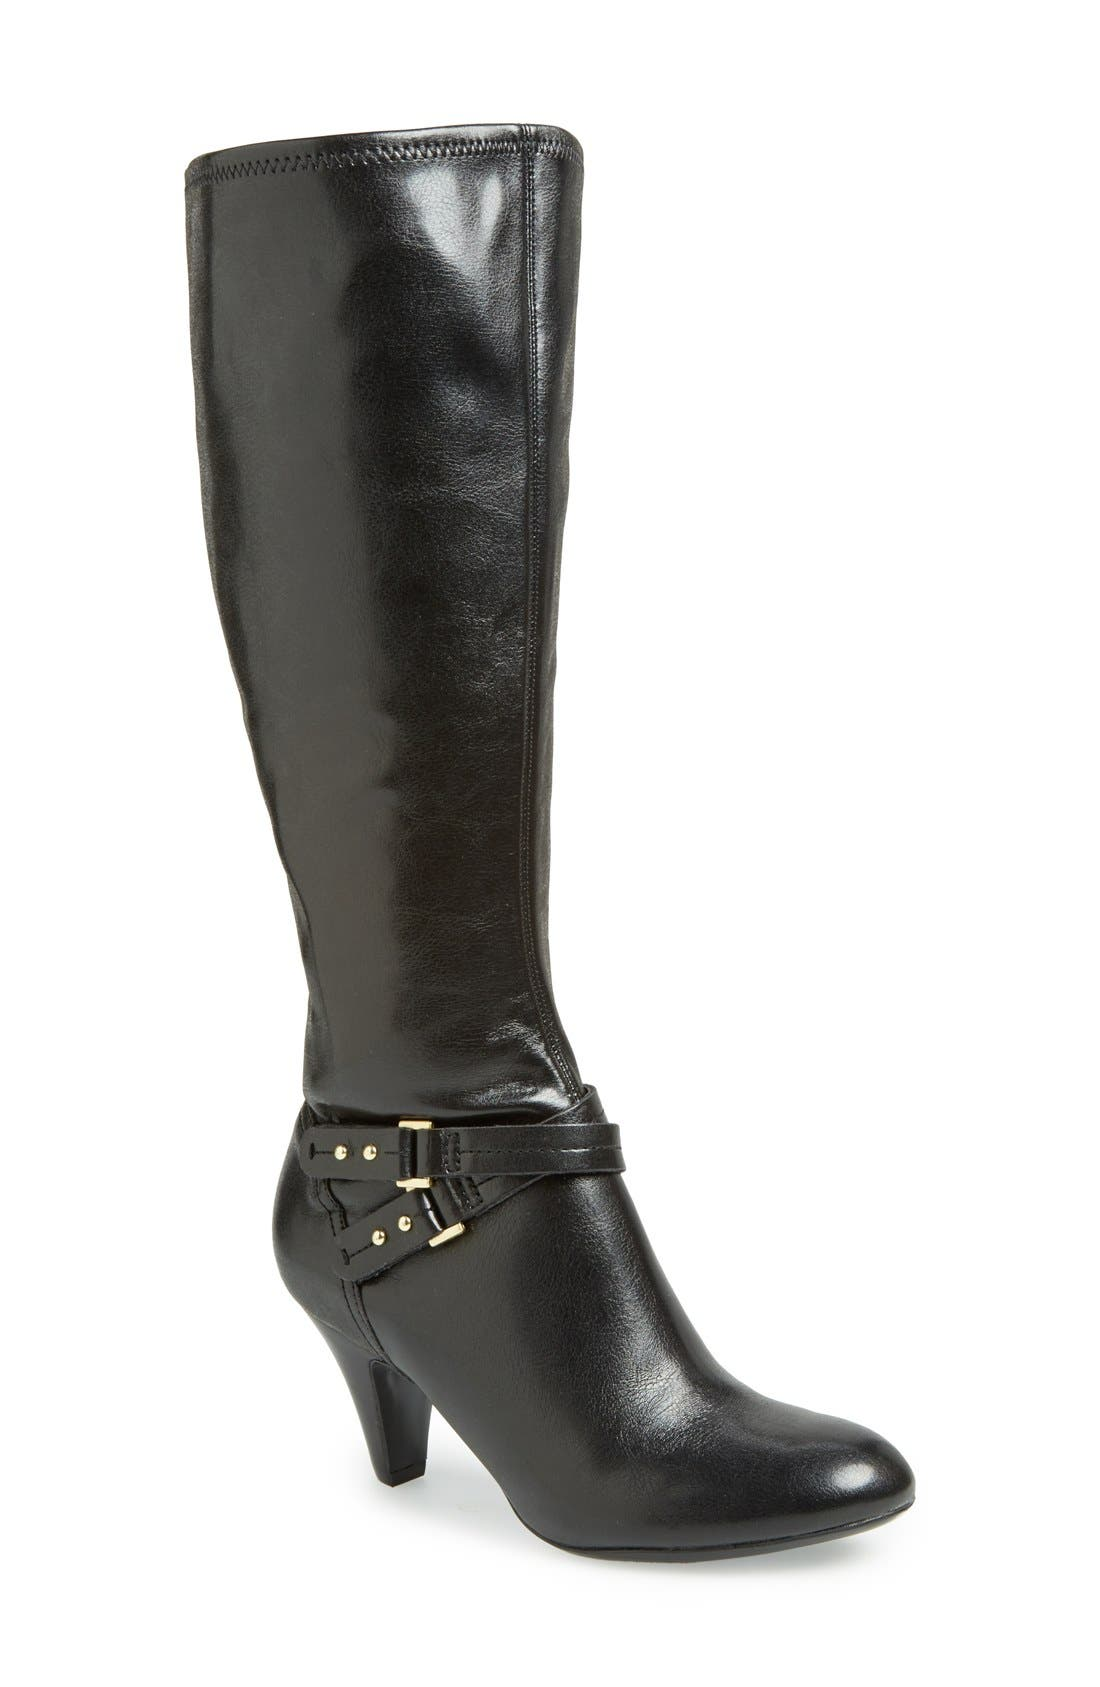 Main Image - Naturalizer 'Byron' Knee High Boot (Women)(Wide Calf)